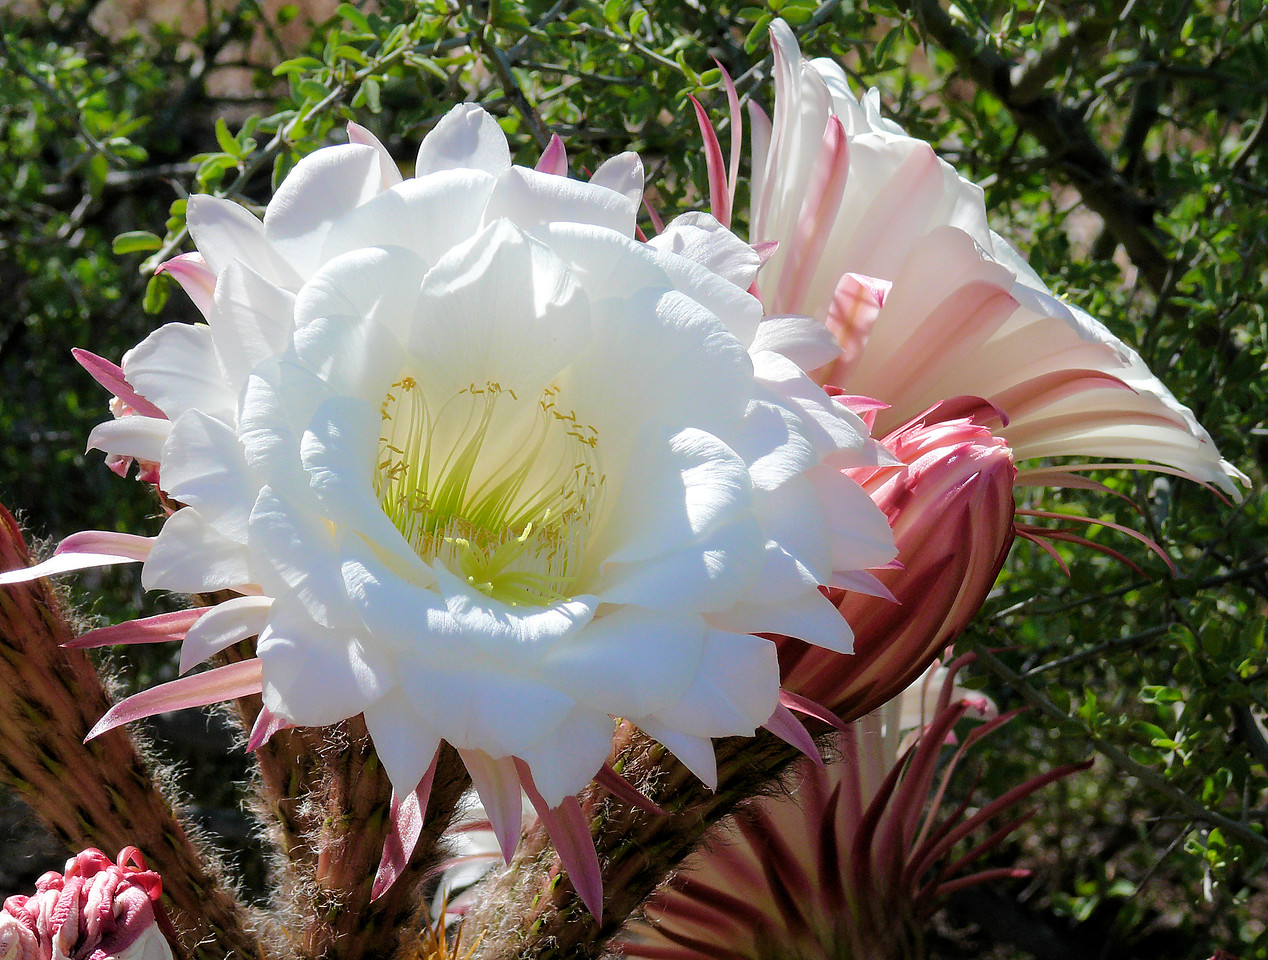 Yep - Another Big White Cactus Flower